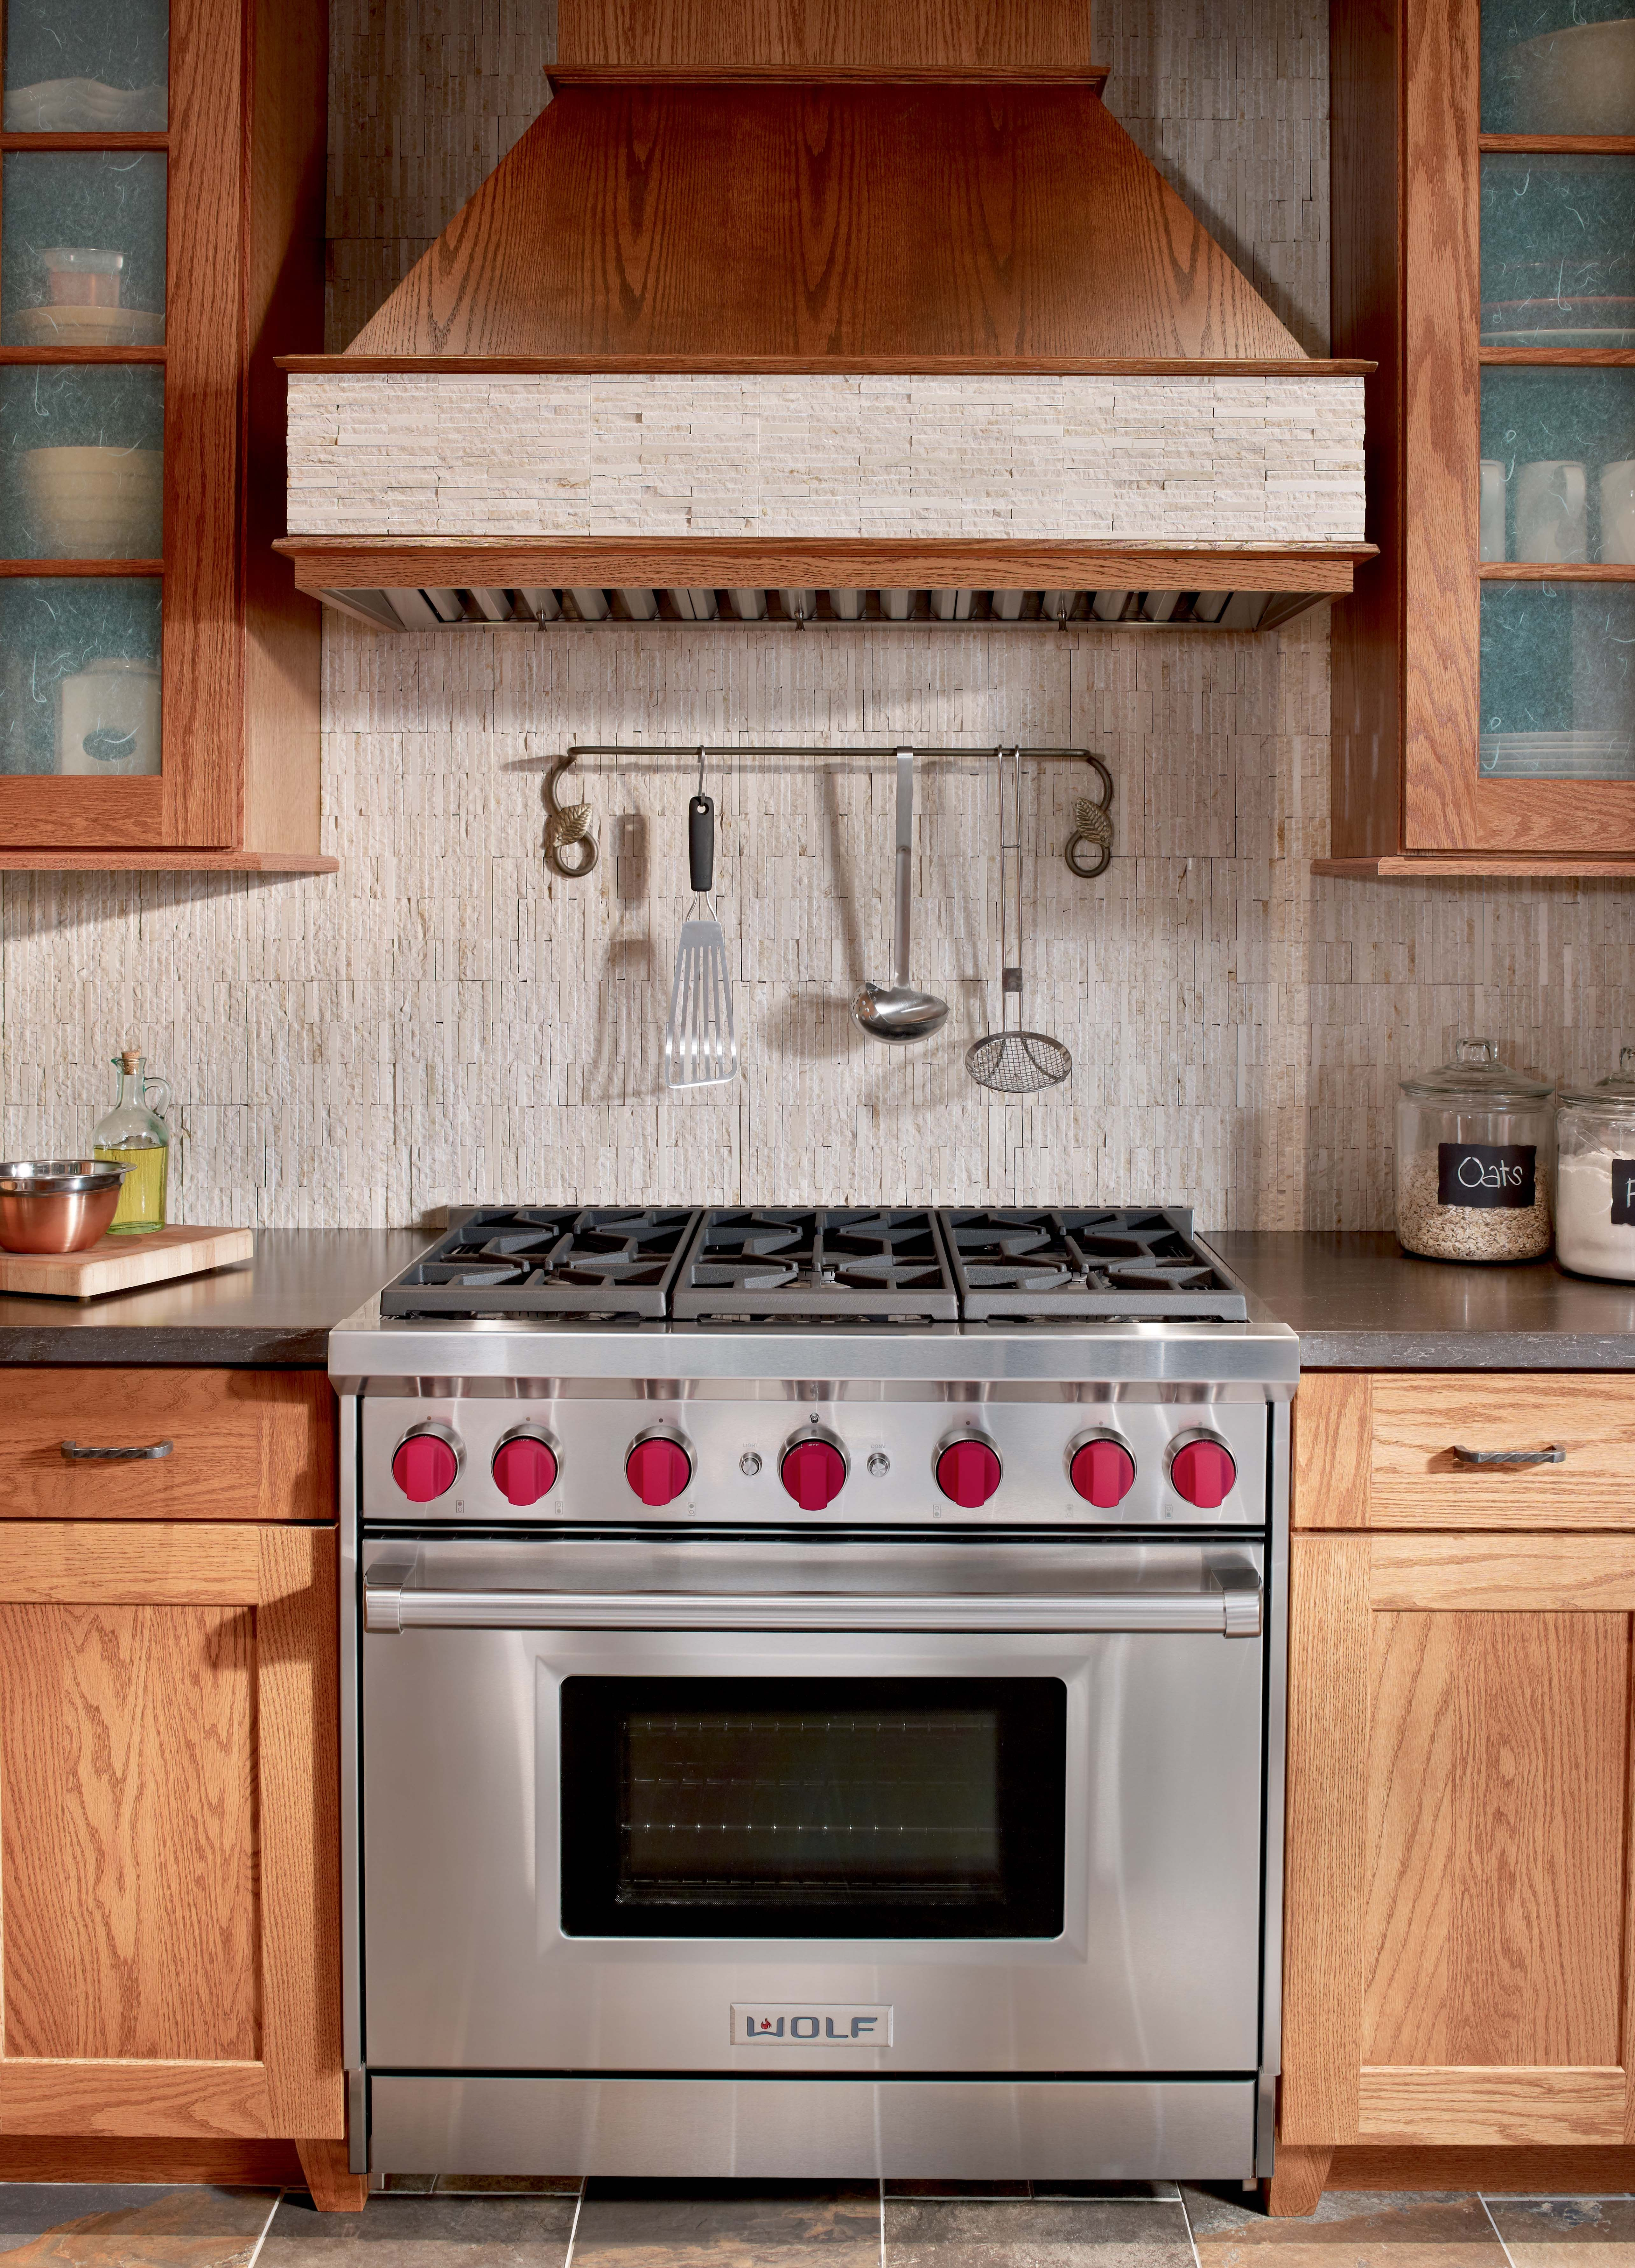 Kitchen Cabinets With Red Knobs You Ll Never Feel The Need To Cross Your Fingers When You Turn One